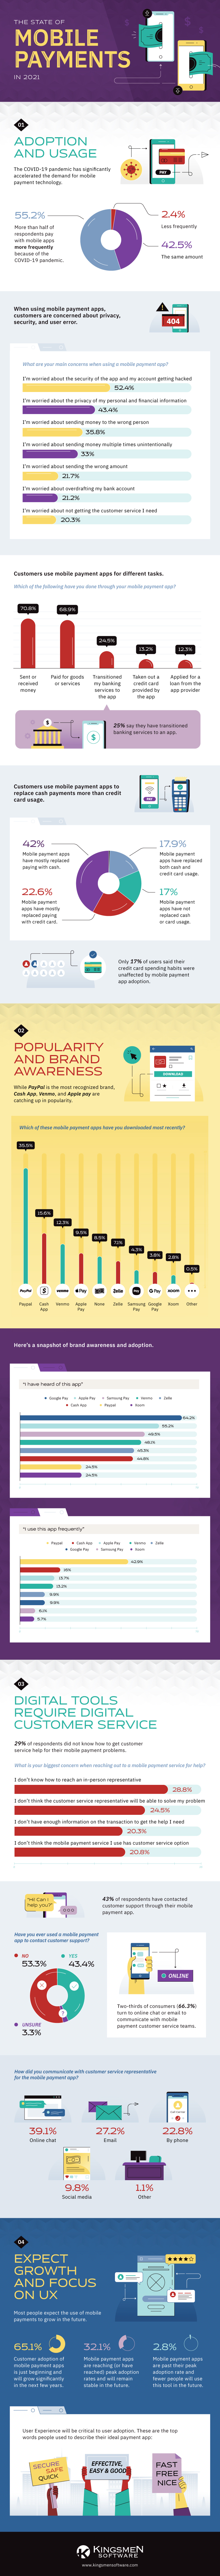 KNG701 - Mobile Payments Infographic